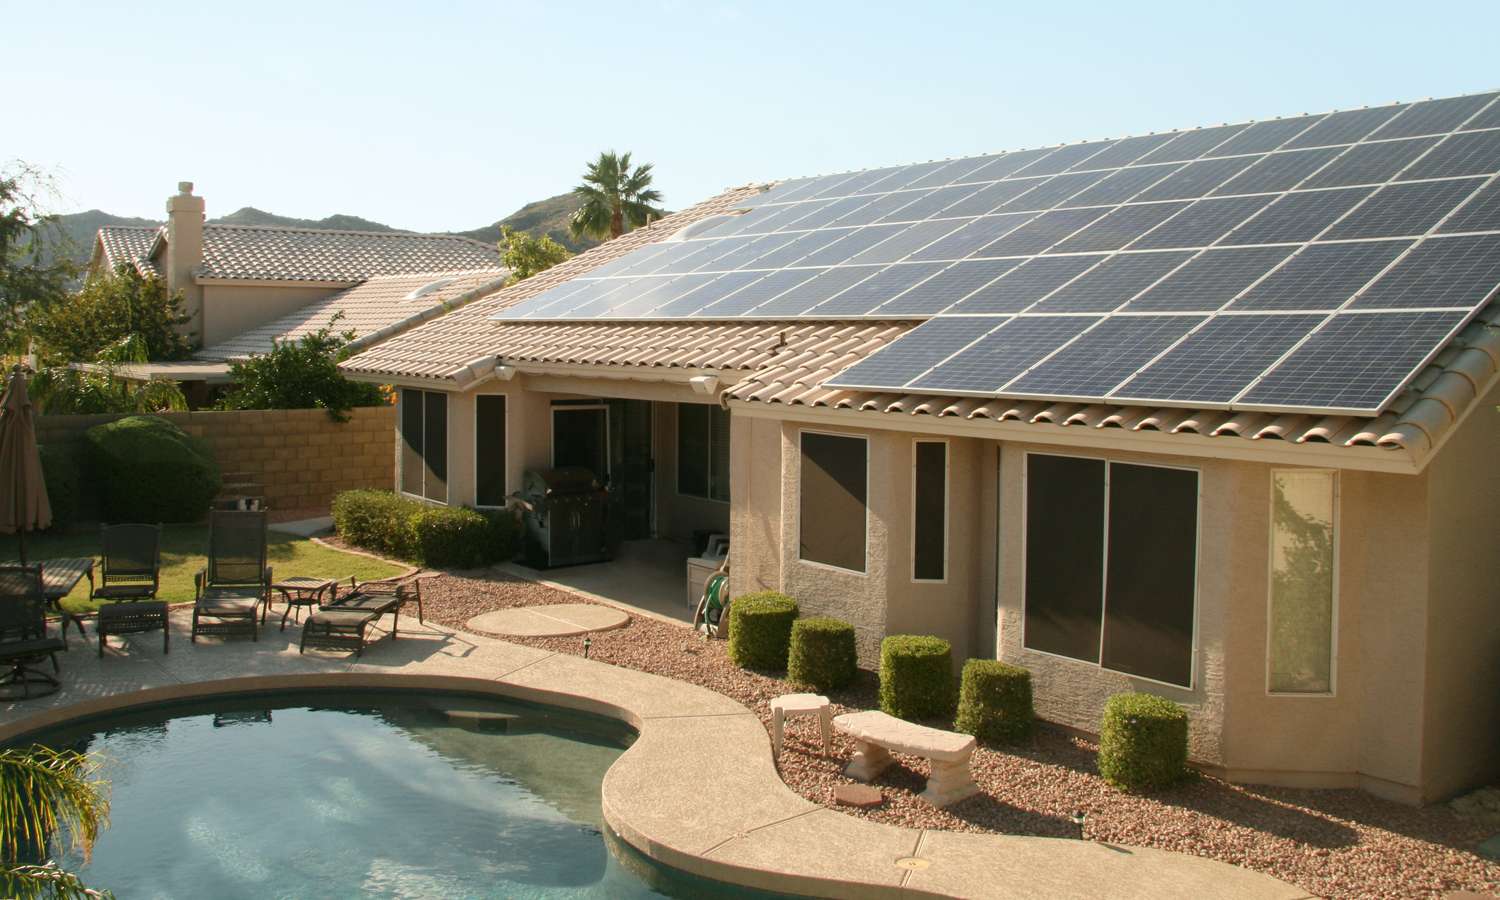 As part of the partnership, up to 150 residential customers in San Jose, California, will recieve smart inverters and/or residential battery storage systems. Image: SolarCity